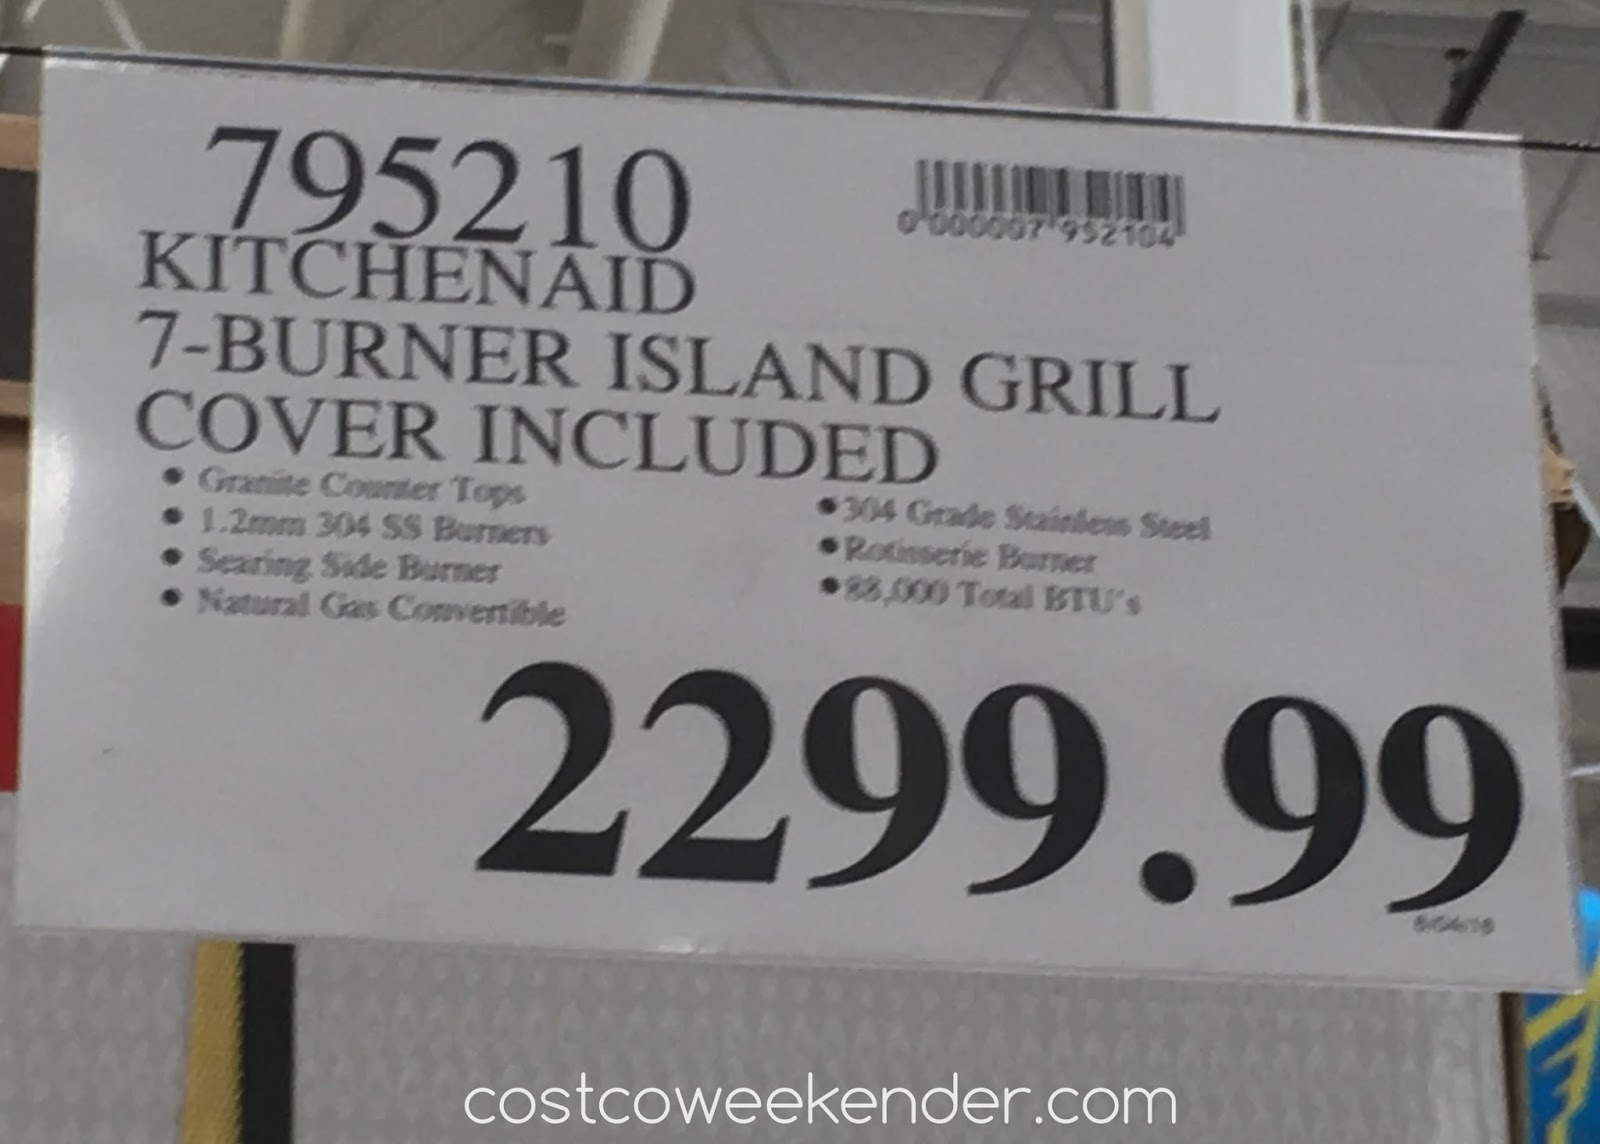 Kitchenaid Seven Burner Outdoor Island Gas Grill Model